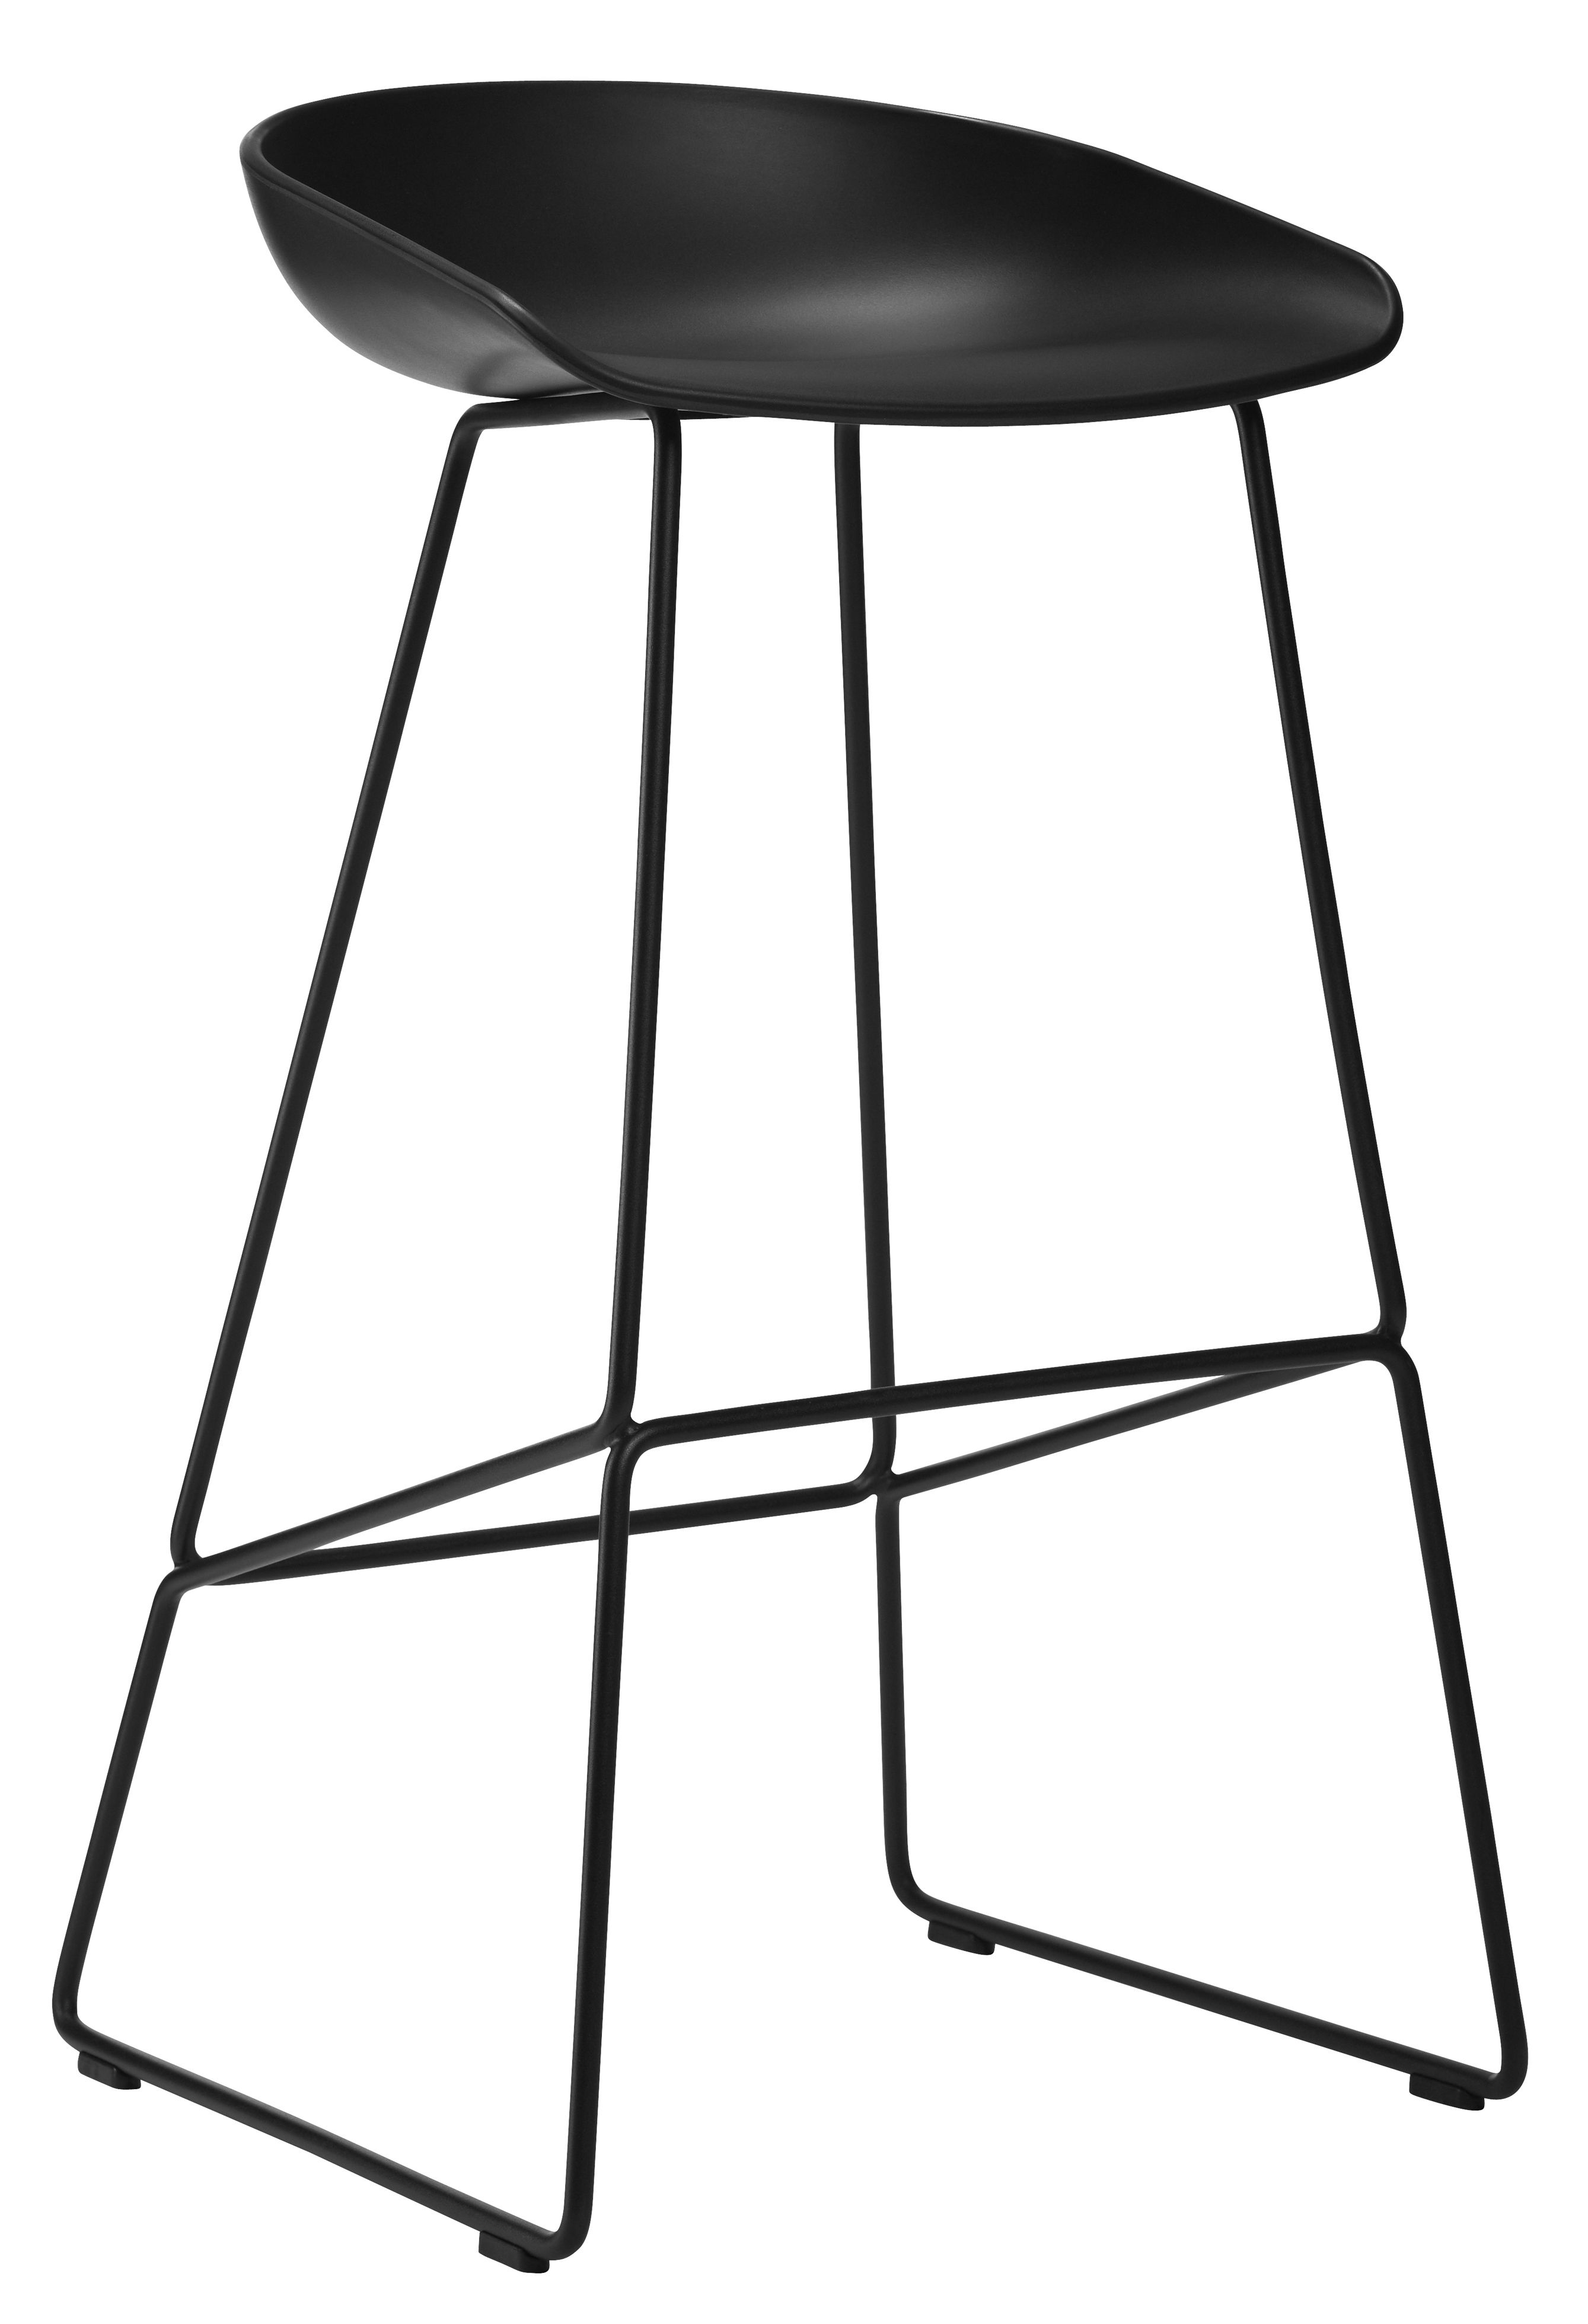 Furniture - Bar Stools - About a stool AAS 38 Bar stool - H 75 cm - Steel sled base by Hay - Black - Polypropylene, Steel